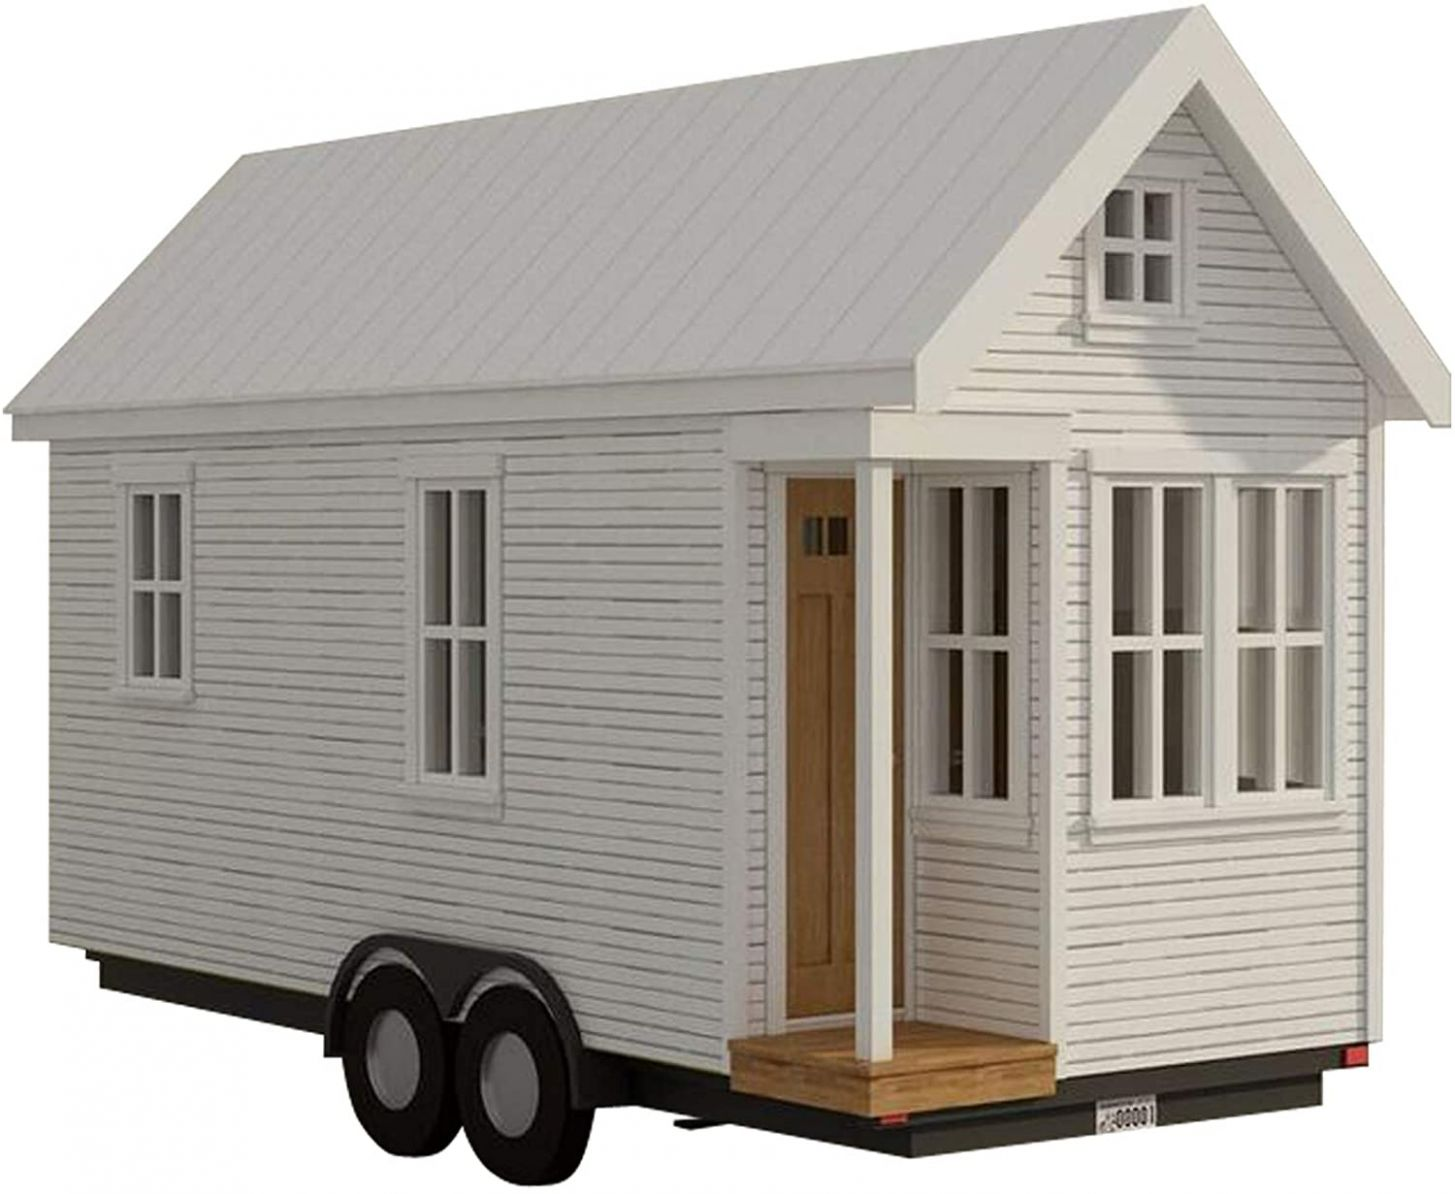 9 sq ft Tiny house - with loft on wheels plans DIY Fun to build!! Build  your own - tiny house on wheels plans